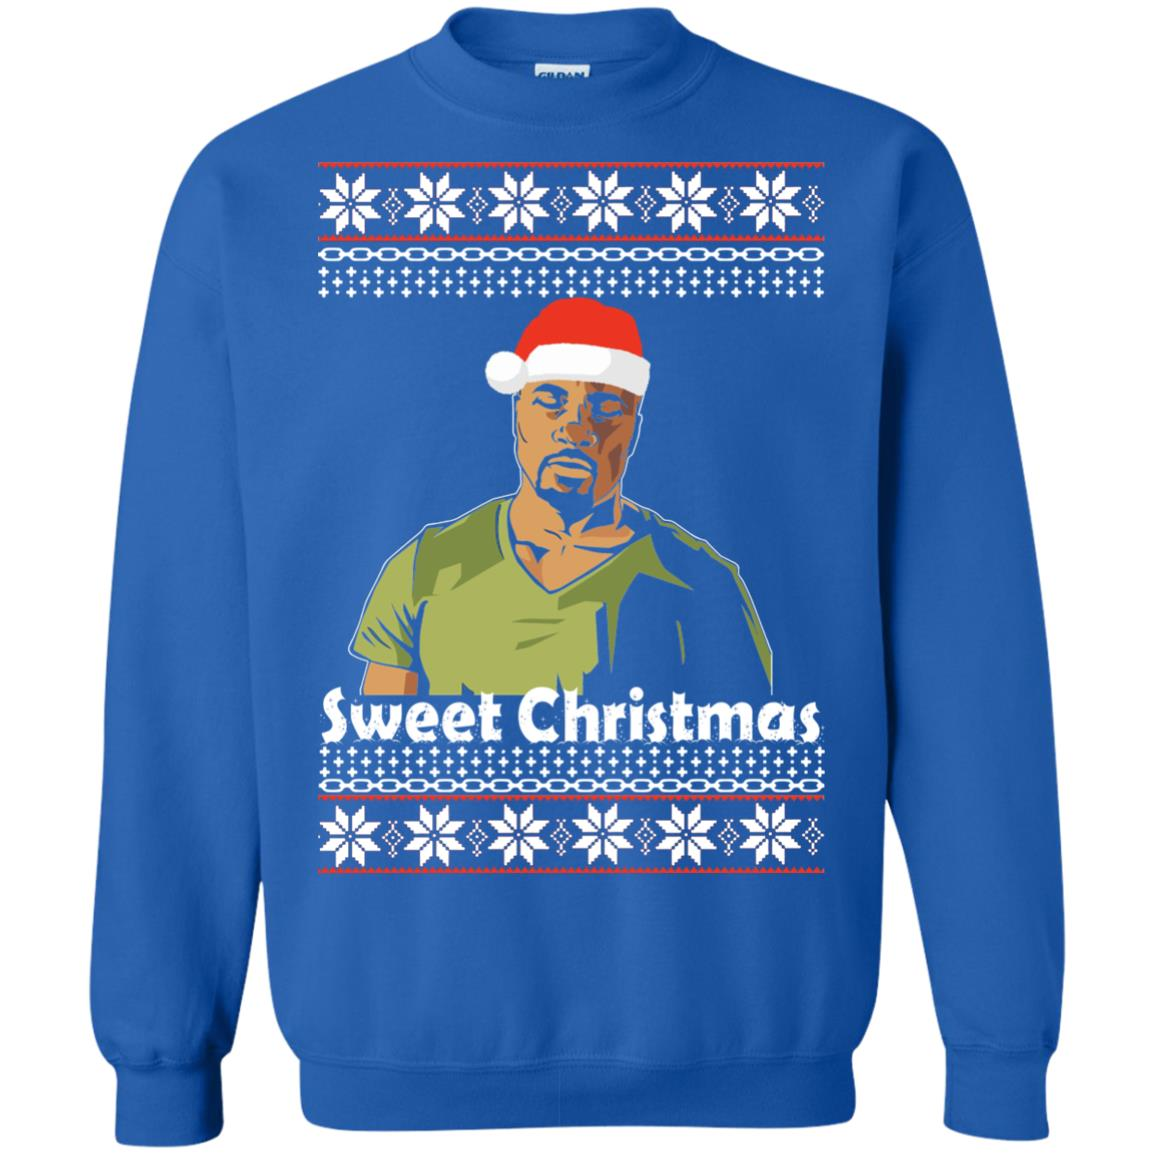 Sweet christmas sweaters